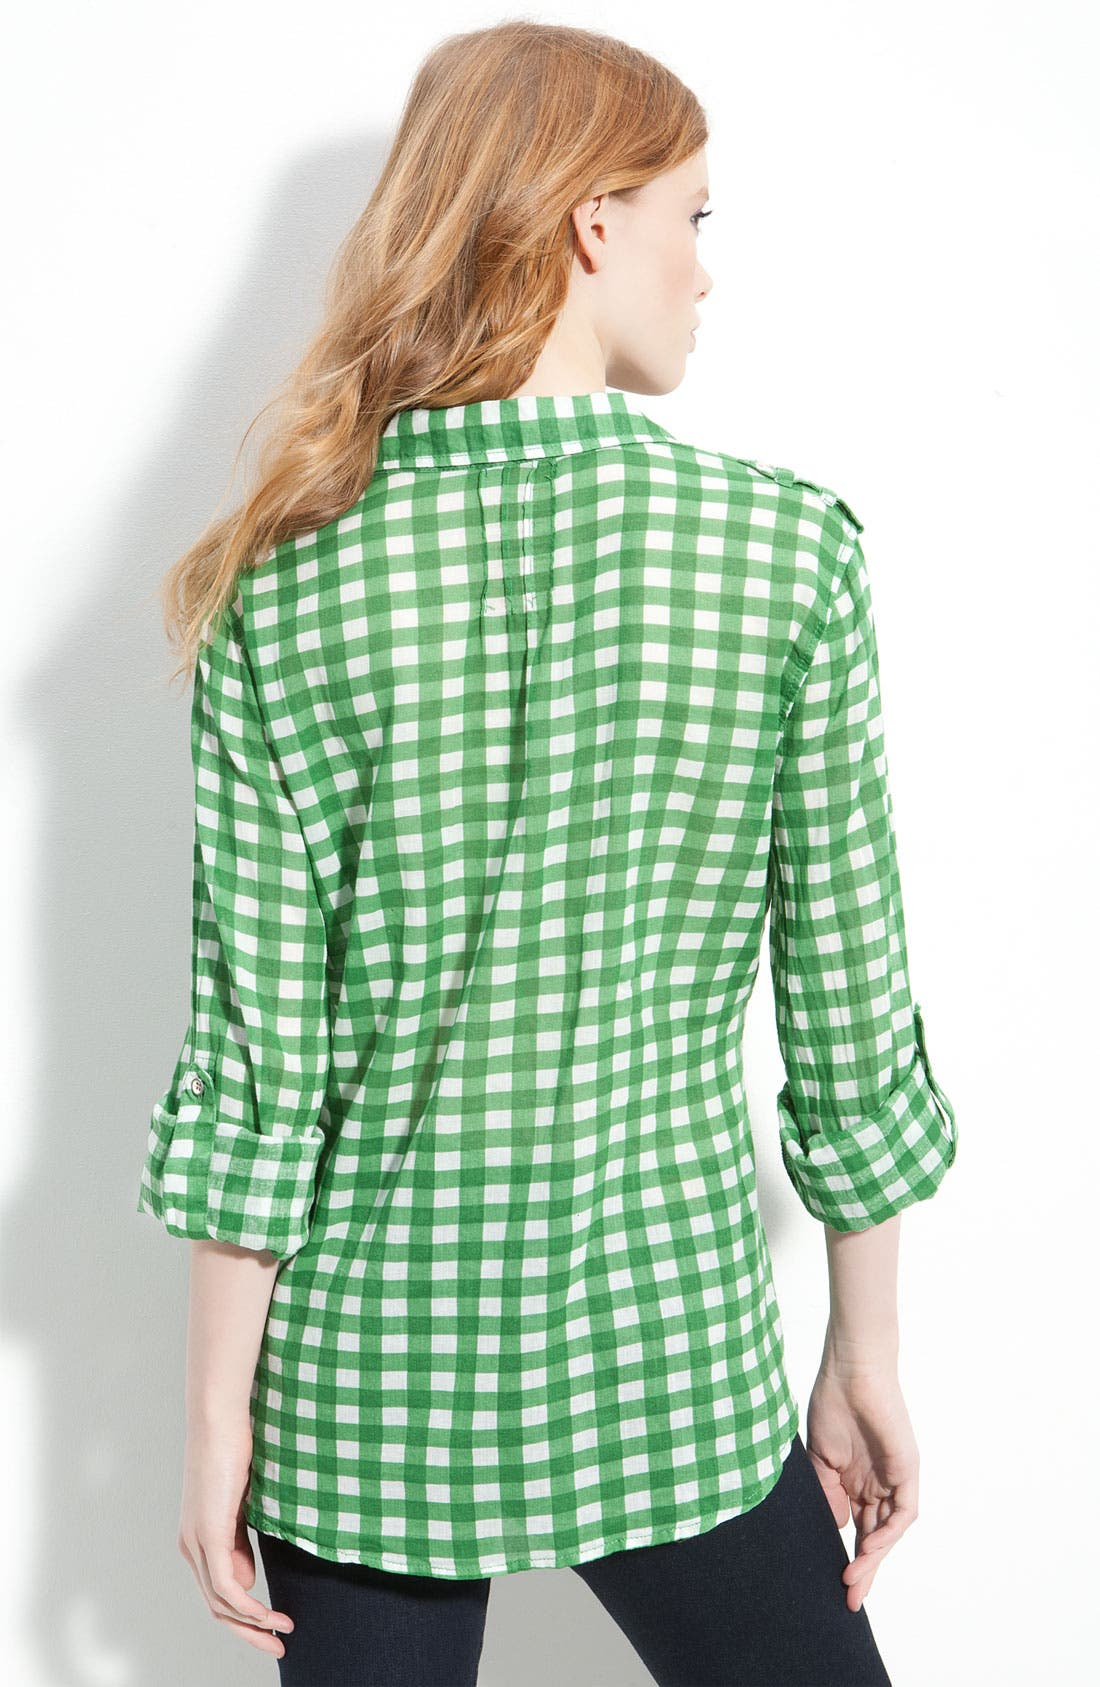 Gingham Check Western Pocket Shirt,                             Alternate thumbnail 2, color,                             316